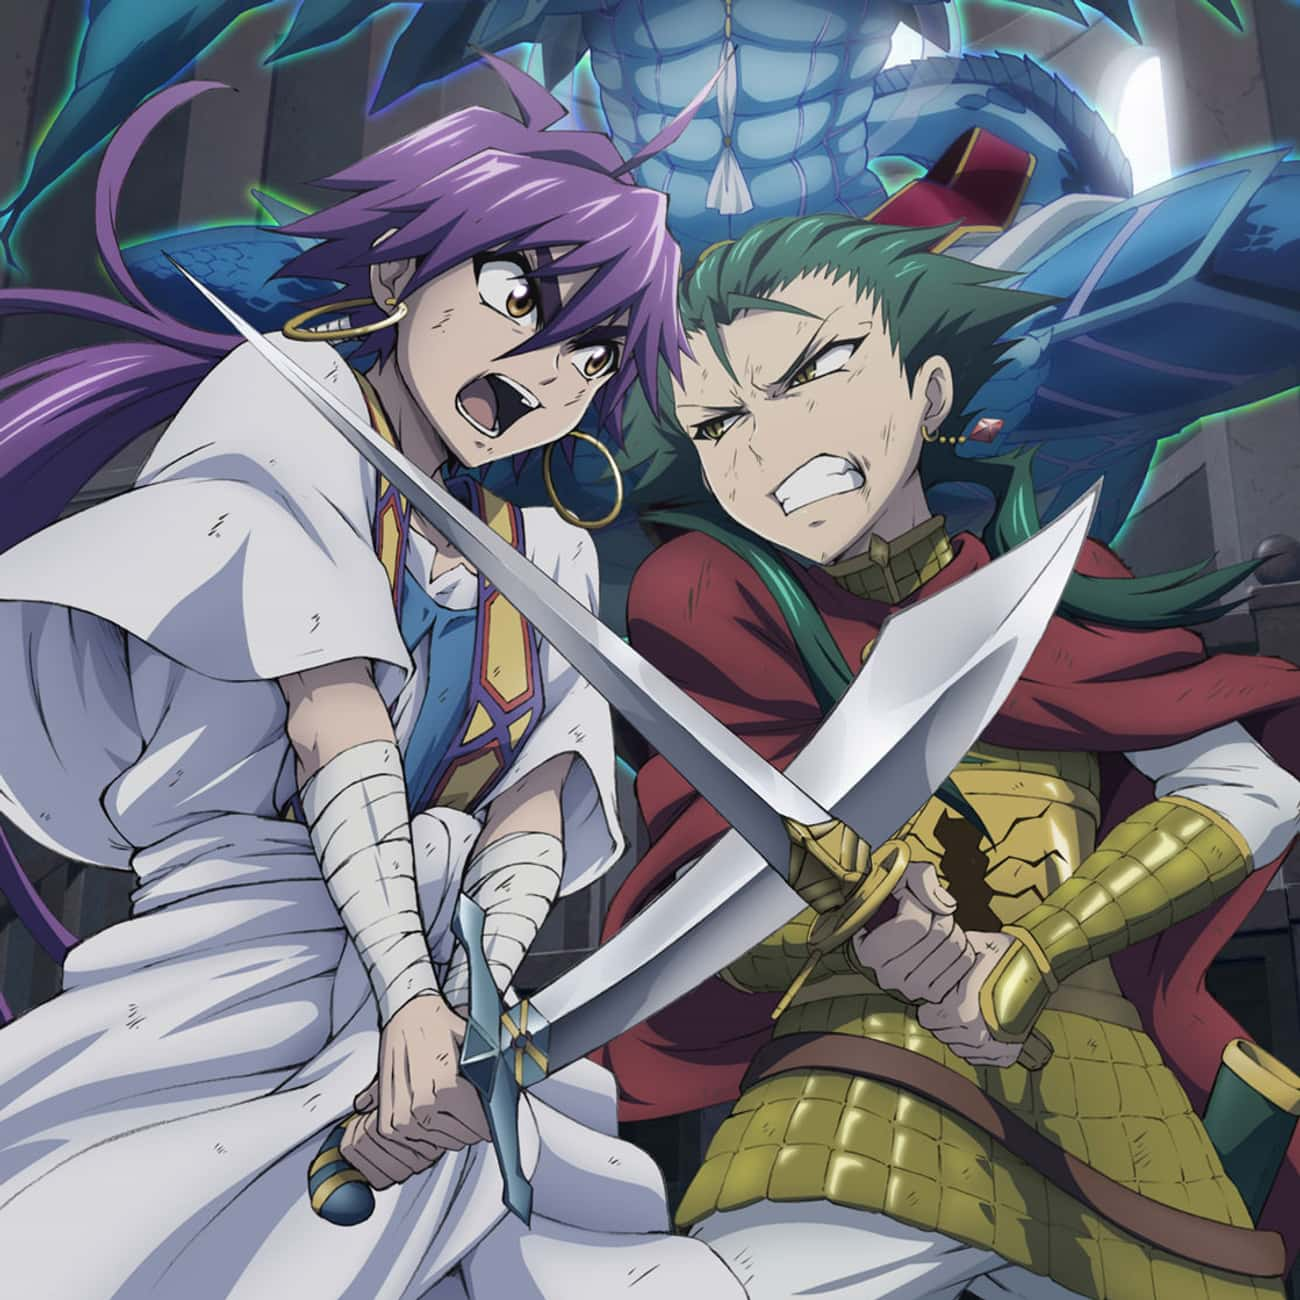 'Magi: Adventure Of Sinbad is listed (or ranked) 1 on the list 19 Fantastic Anime Spin-Offs That Are Totally Worth Watching